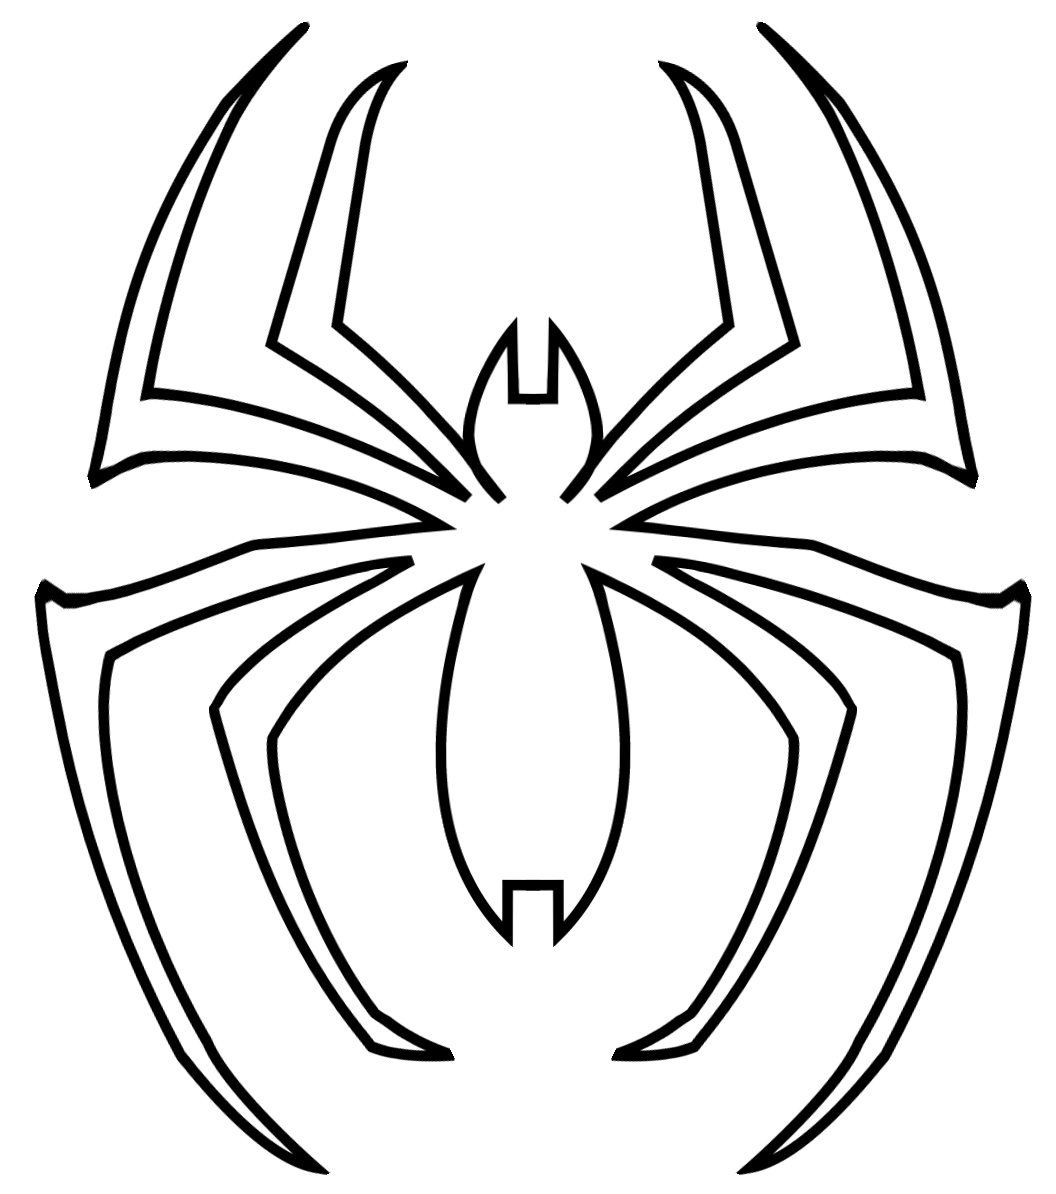 Spider Man Spider Logo Template Spiderman Pumpkin Spiderman Coloring Spiderman Pumpkin Stencil